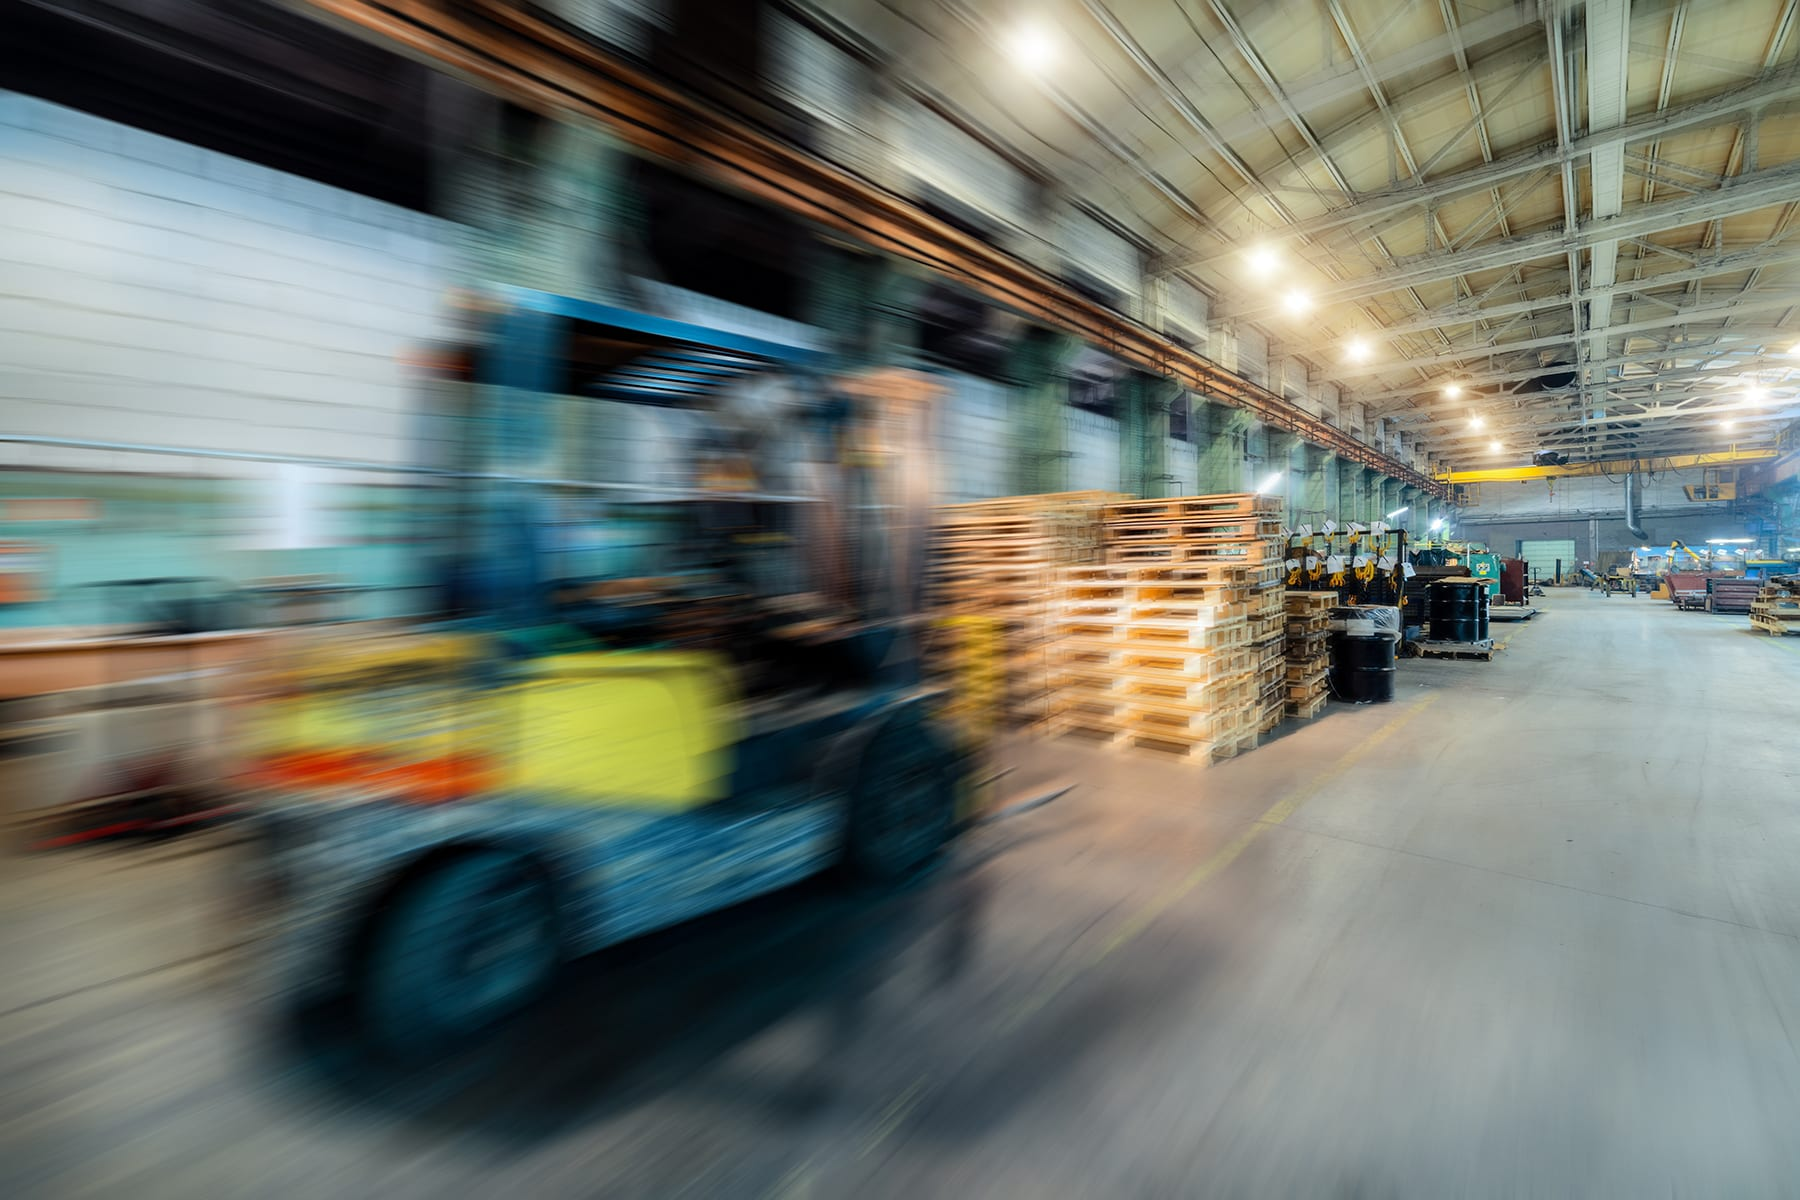 blur image of forklift in warehouse